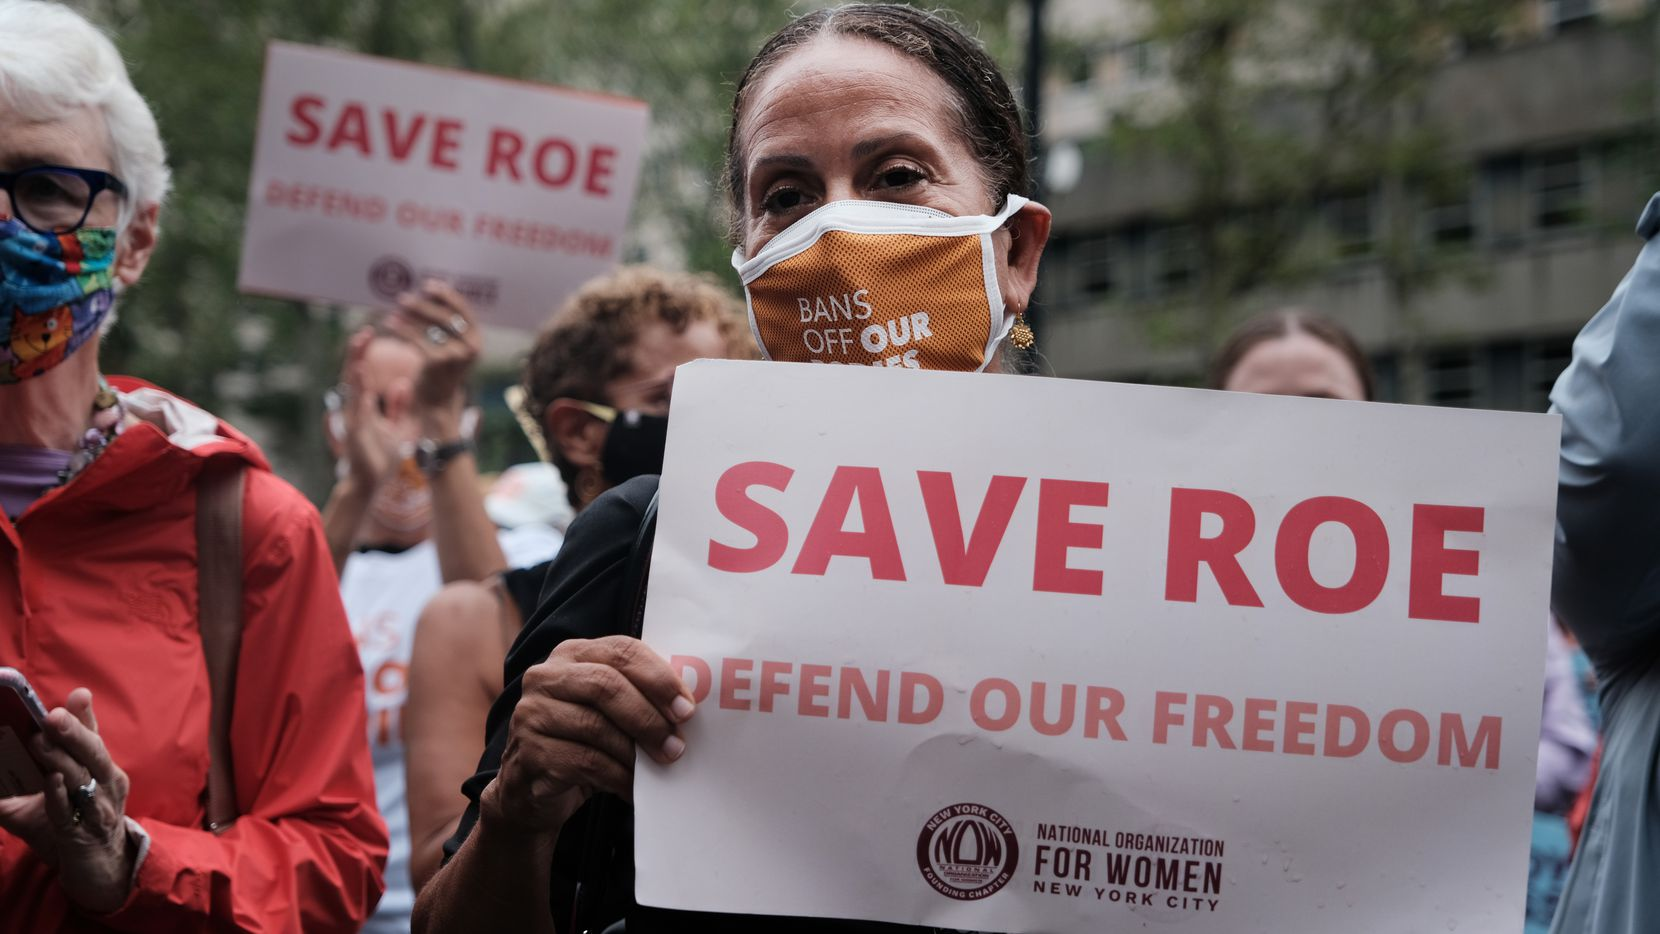 Supporters of abortion rights participate in a rally to denounce Texas' new six-week abortion ban on Sept. 9, 2021, in New York, the same day the Biden Justice Department sued the state, calling the new law unconstitutional.